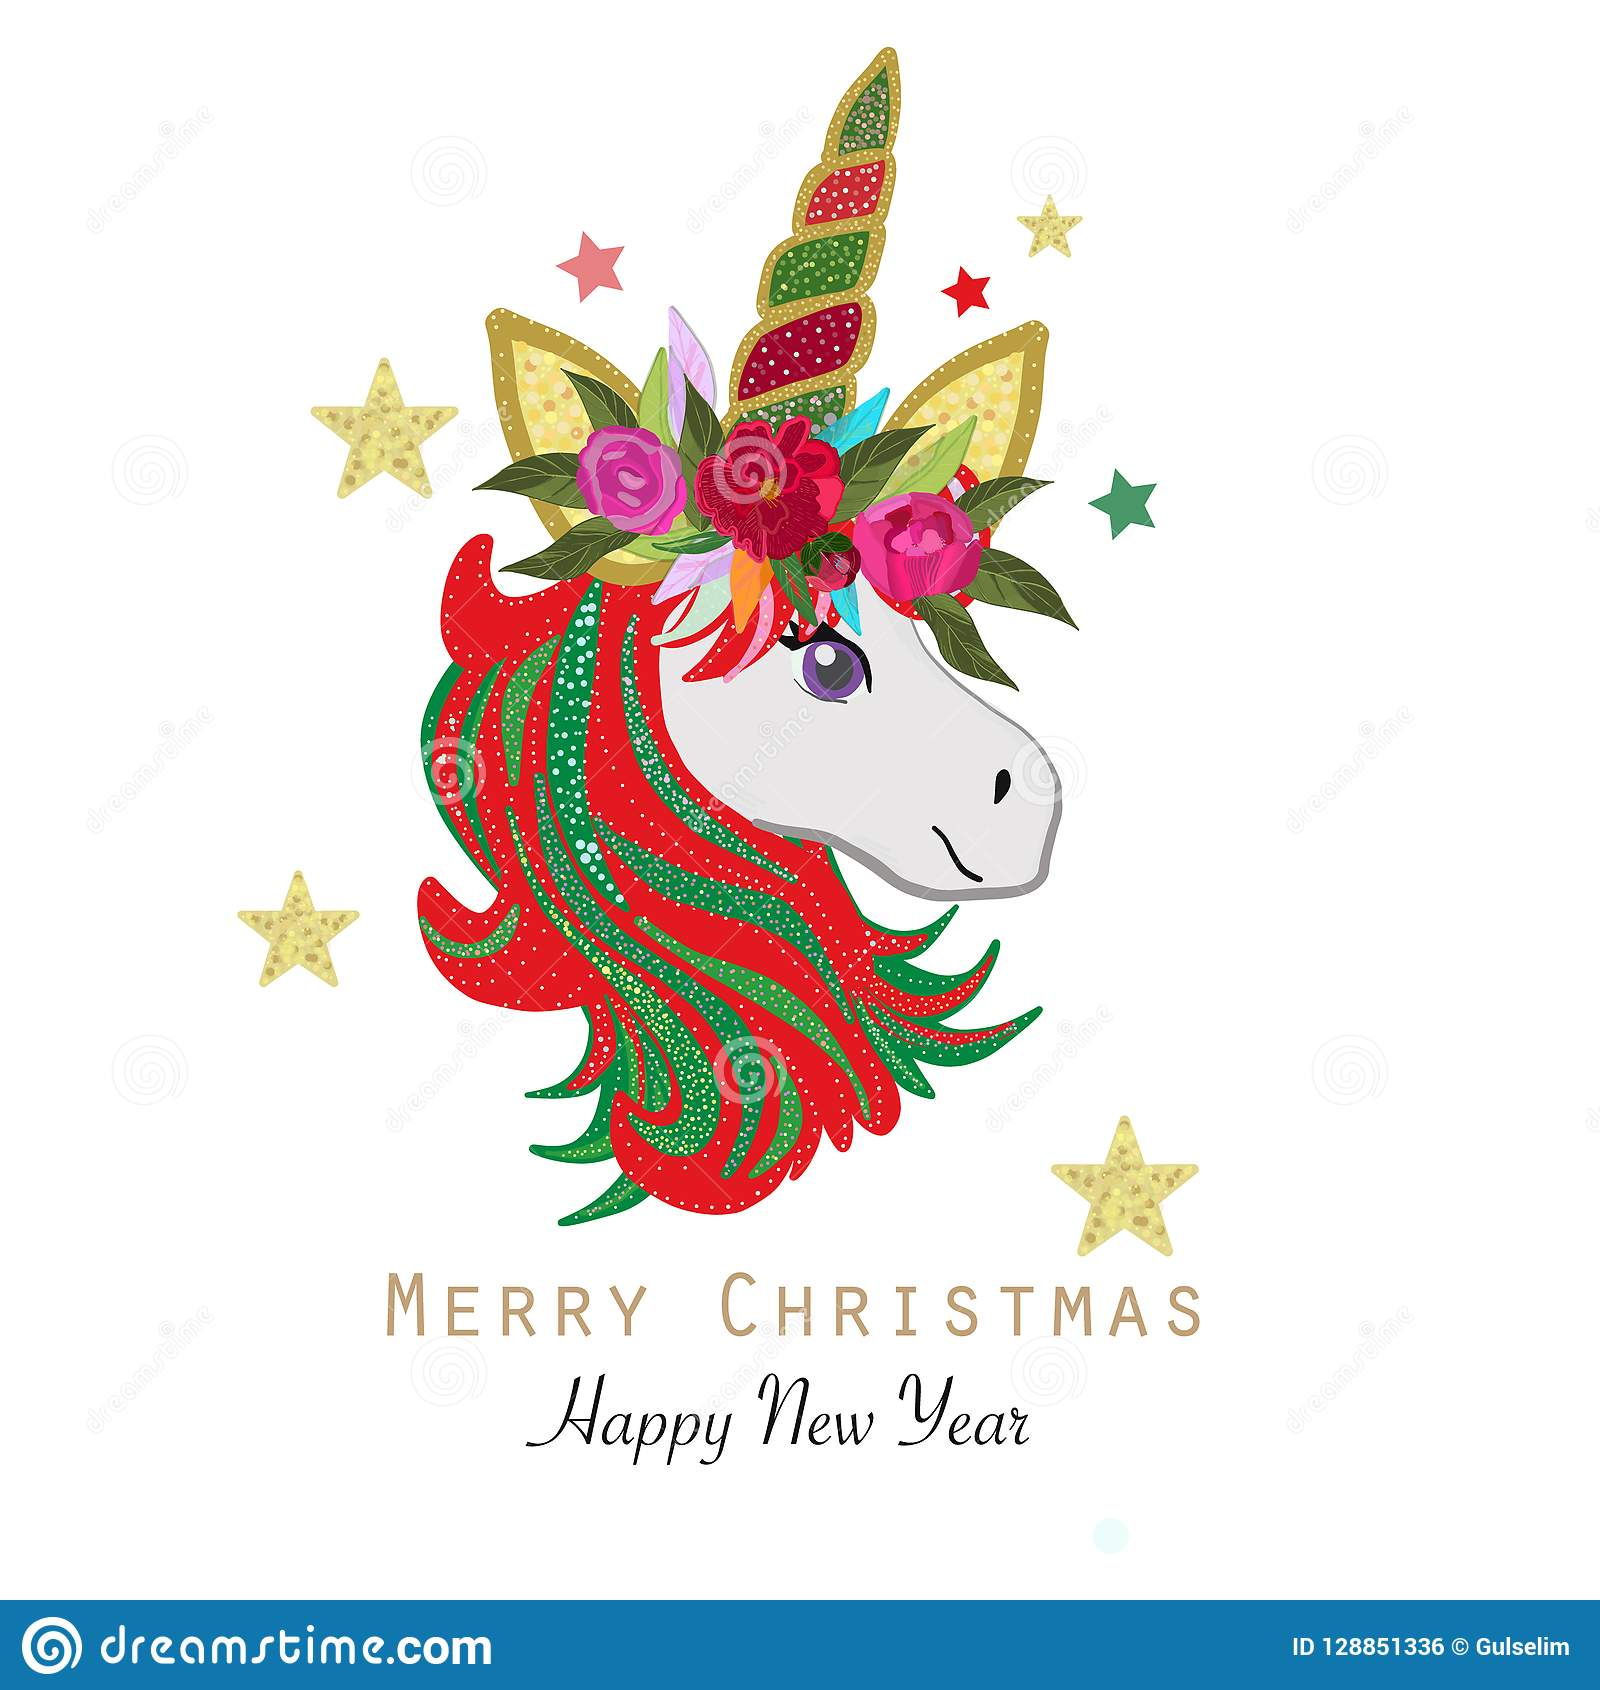 magical unicorn happy new year and merry christmas greeting card